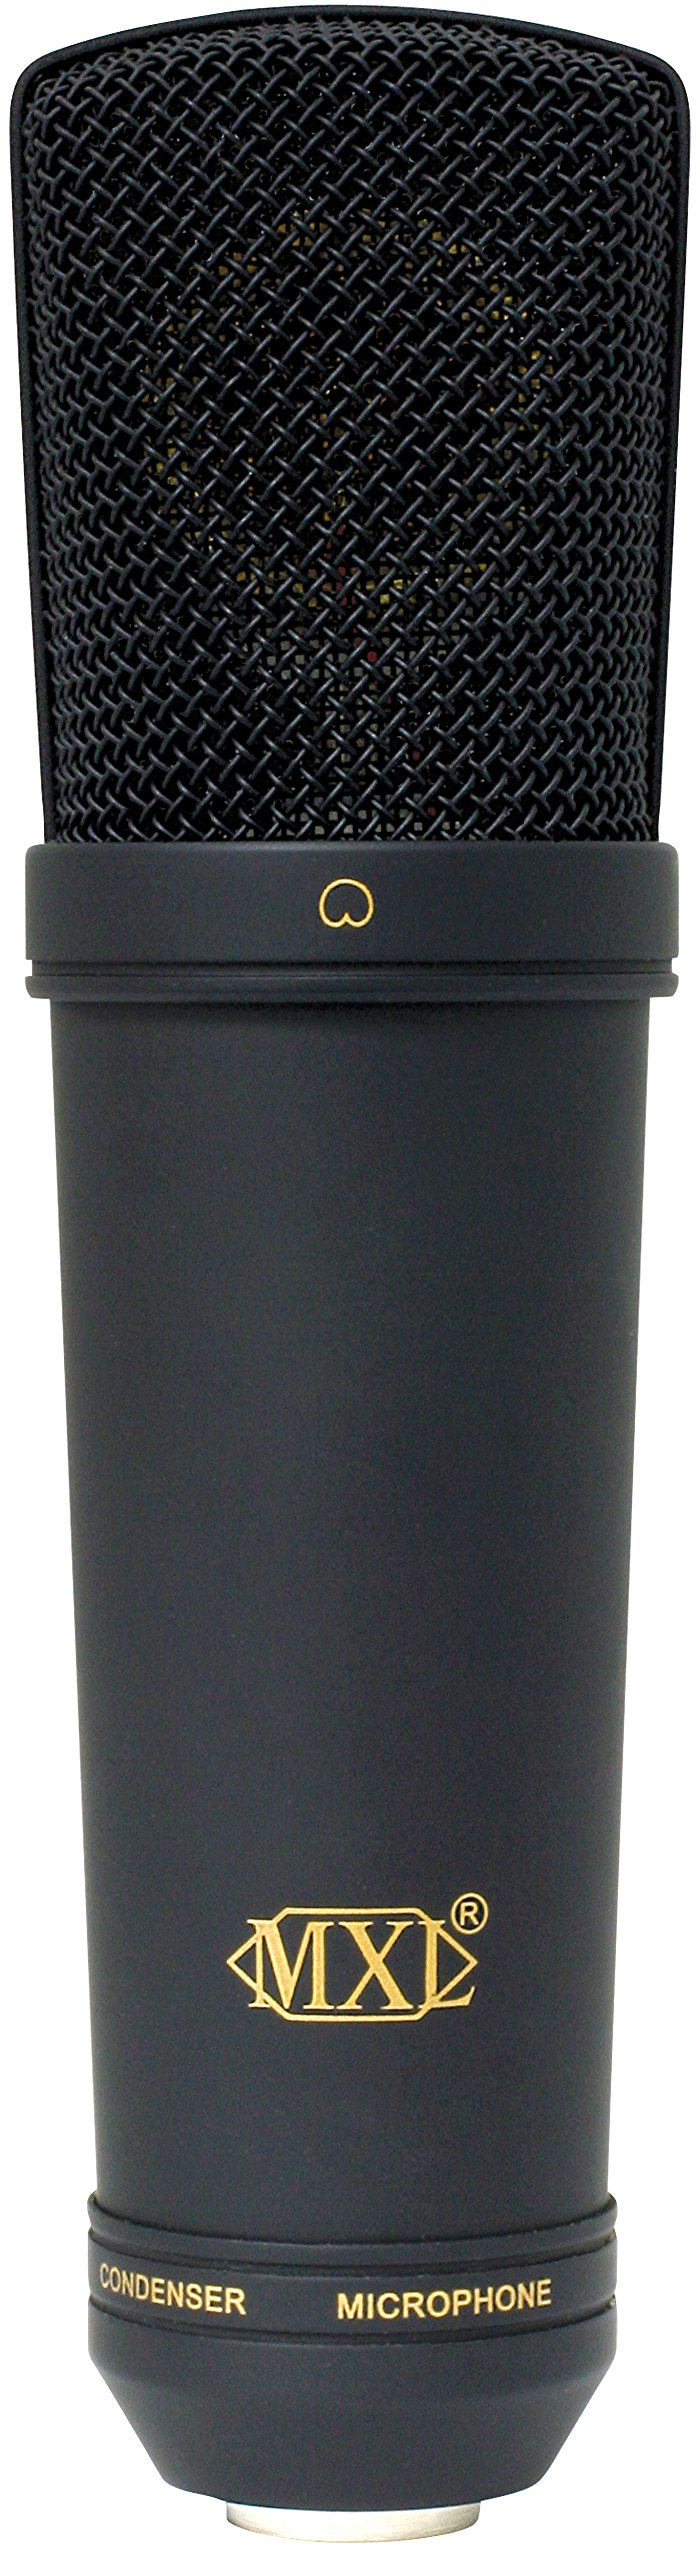 Microfono MXL 2003A Large Capsule Condenser  with High-Is...